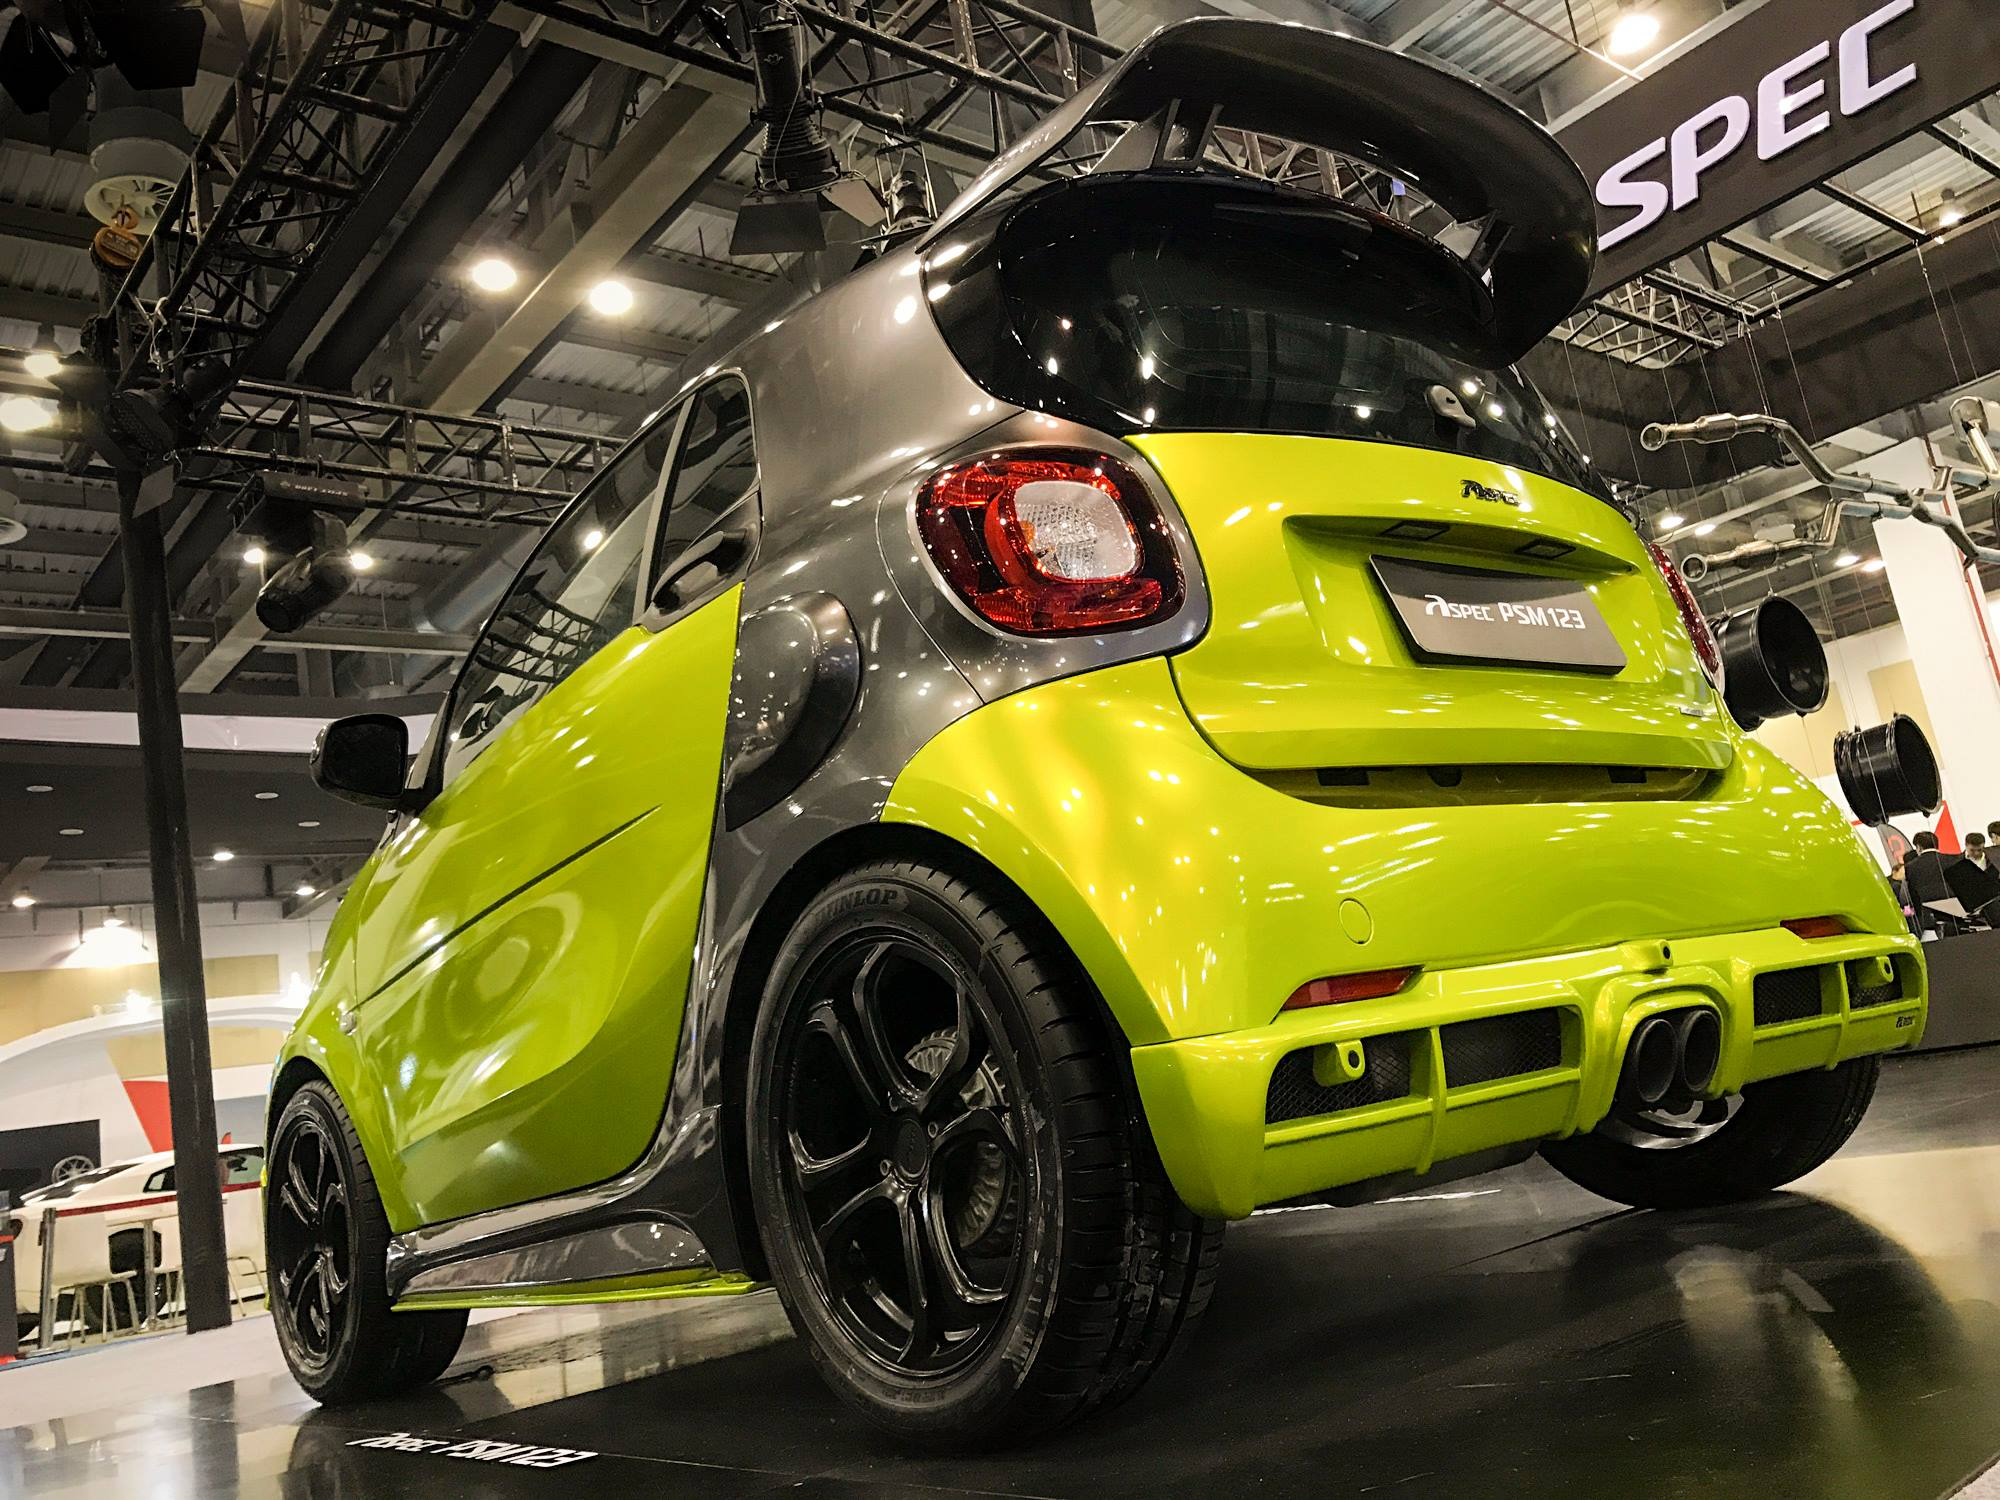 Smart Fortwo Tuned By Aspec Has Amg Like Grille And Active